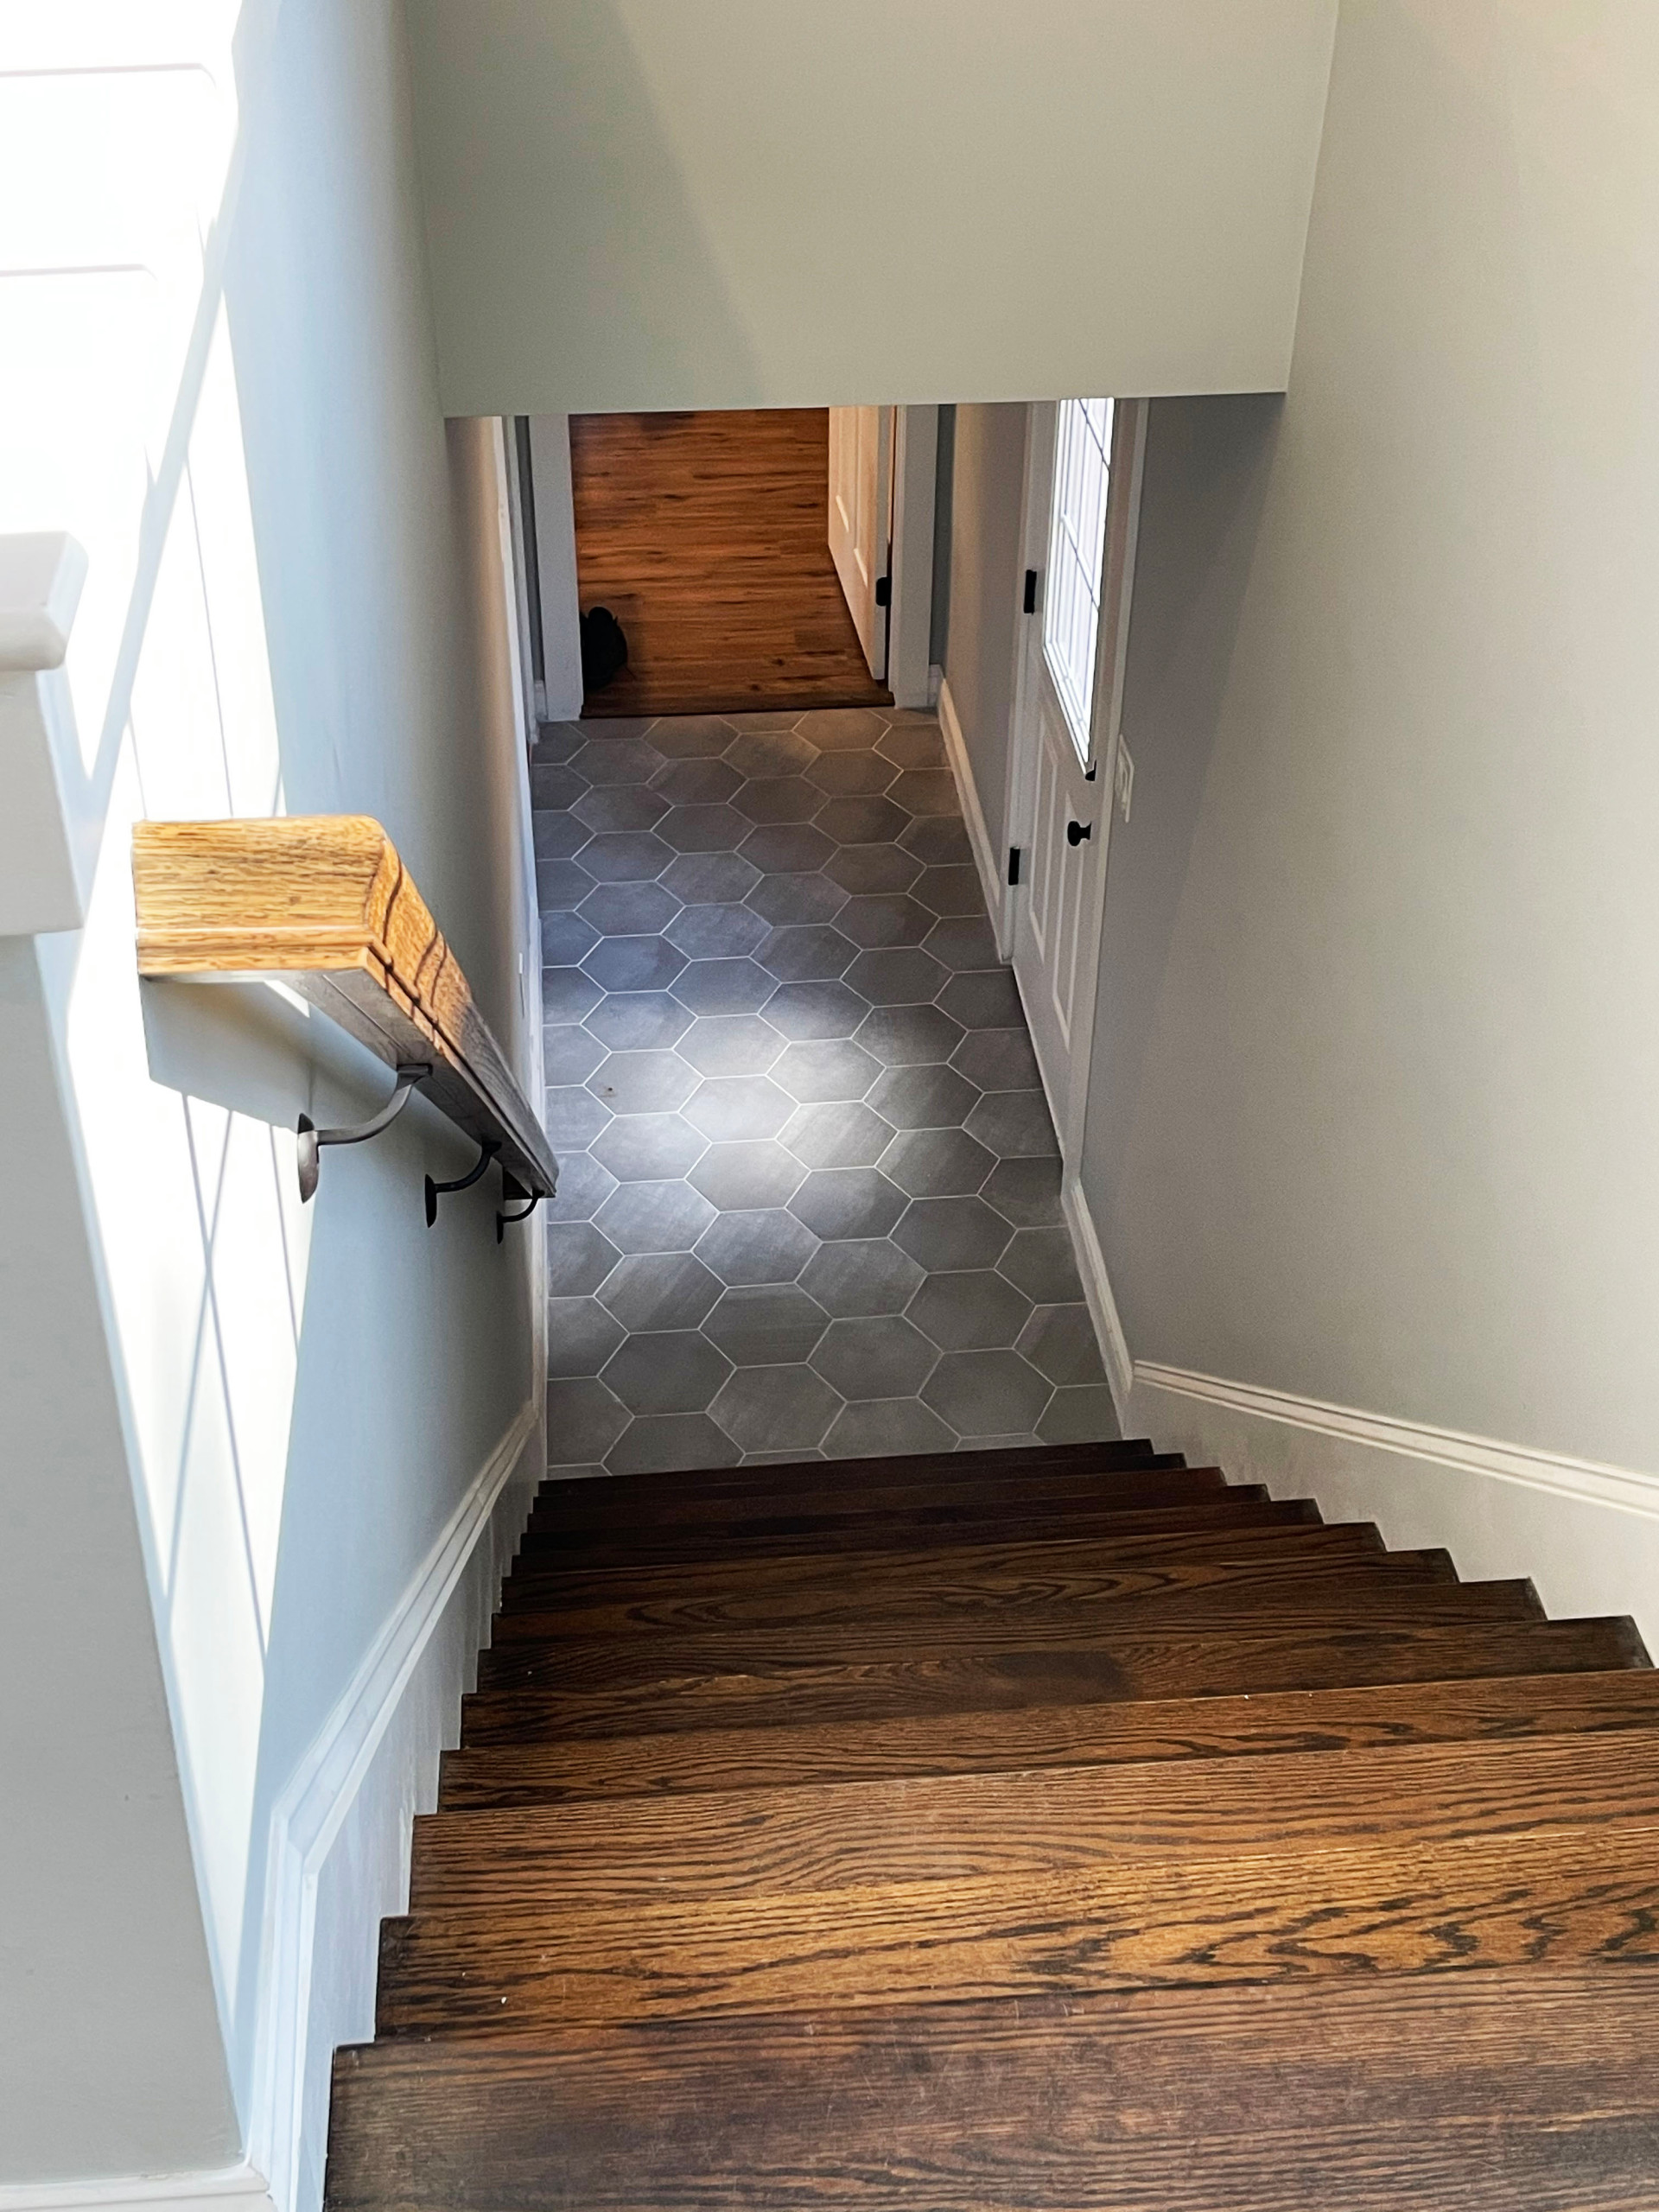 Stairs to lower level of home and in law spaces